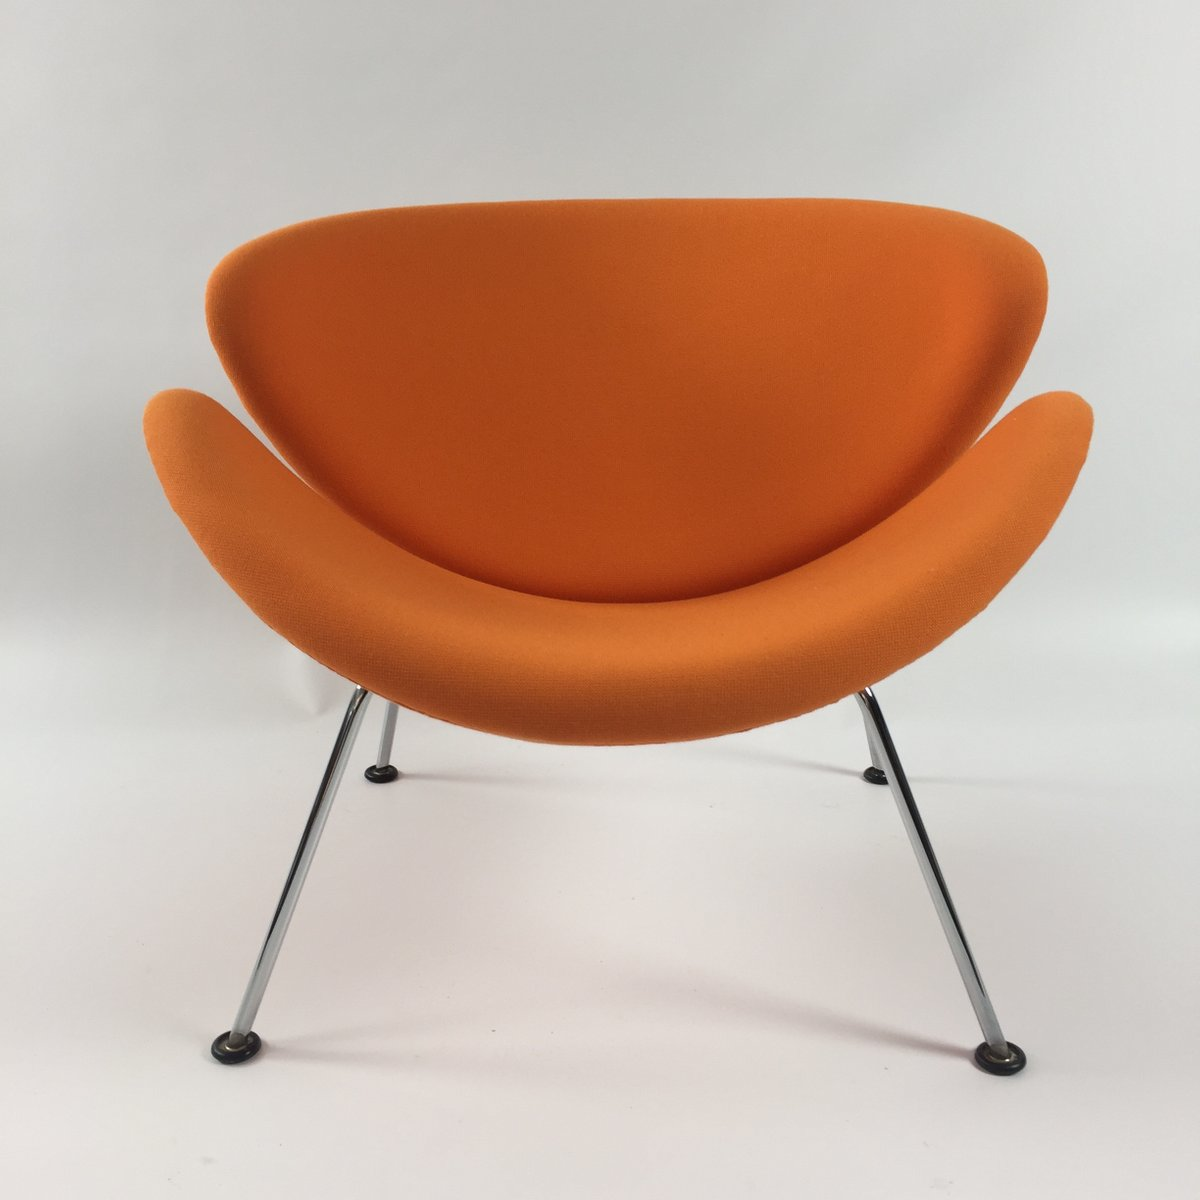 orange slice chair staples task parts vintage lounge by pierre paulin for